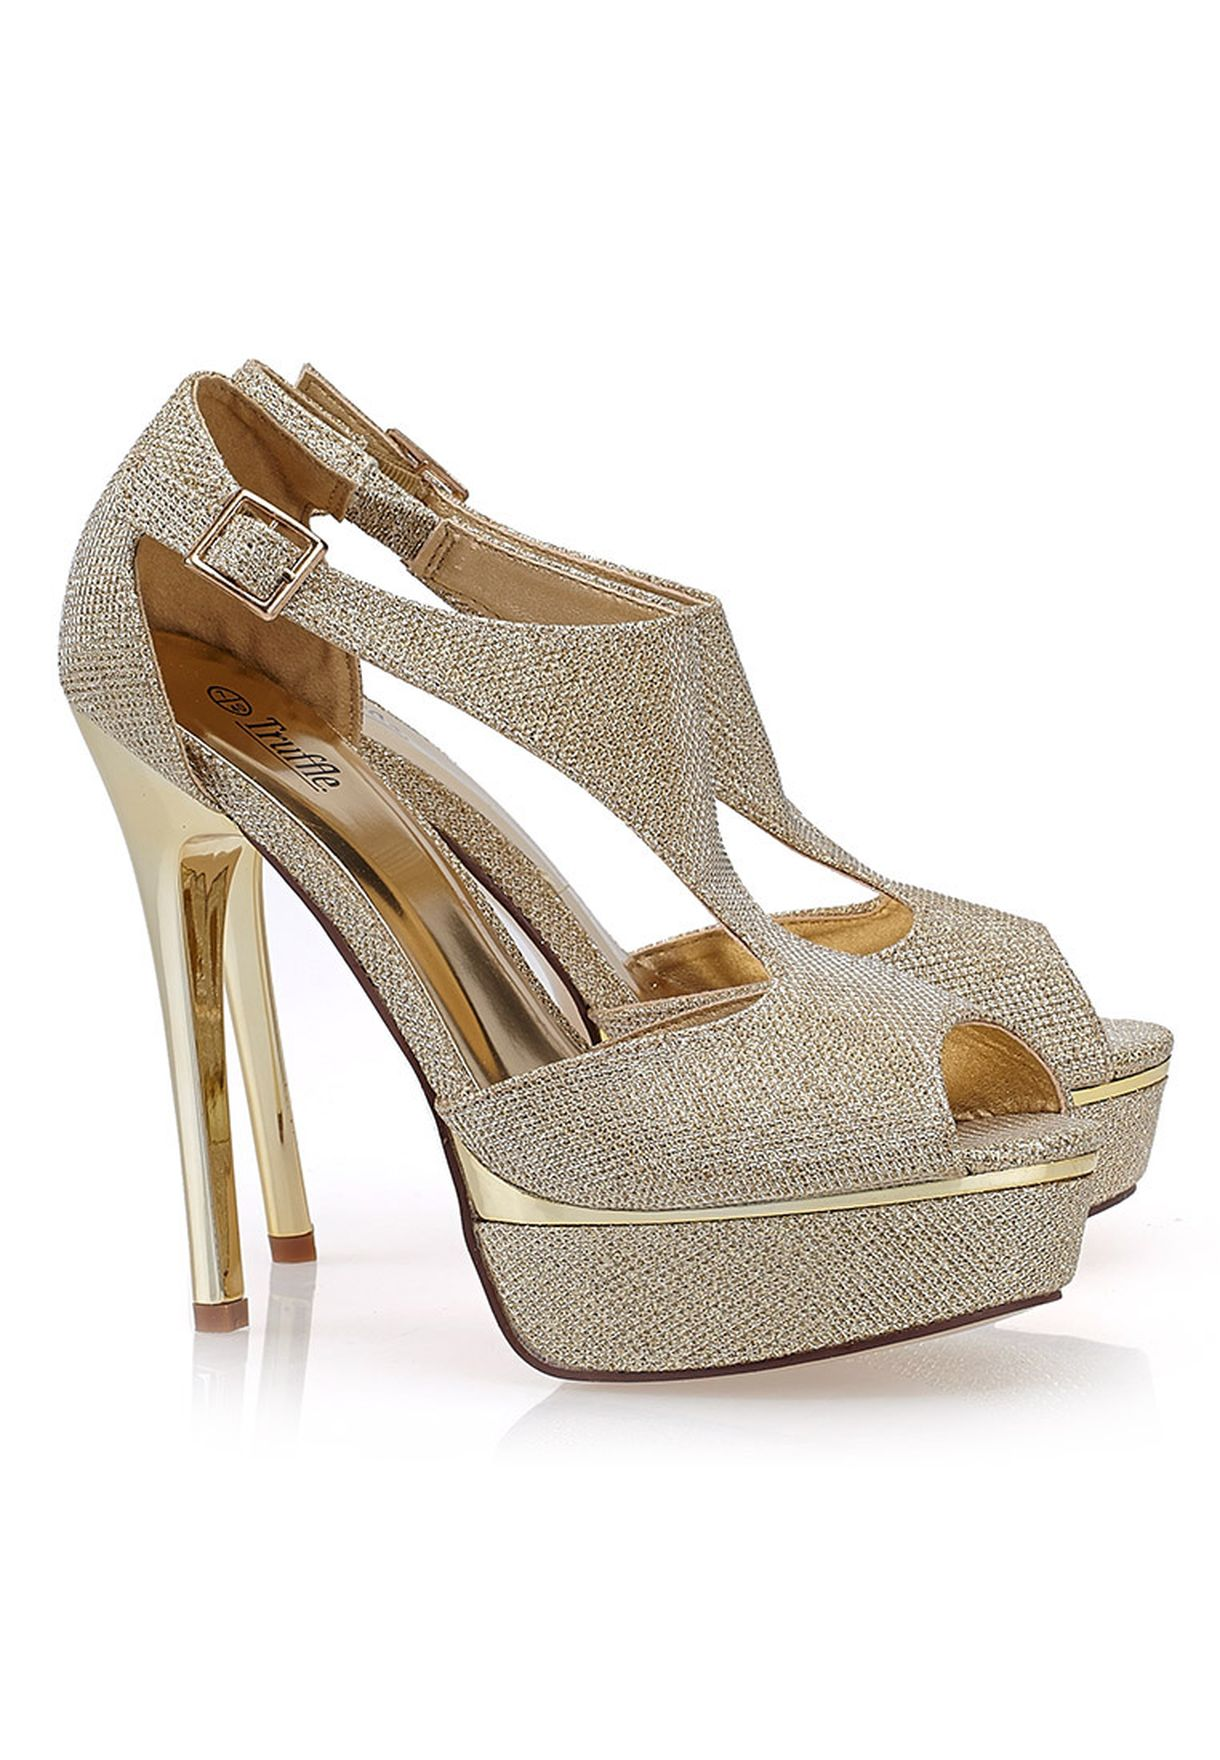 c67b9ed4b6ec Shop Truffle gold Glitter Platform Sandals for Women in Oman ...